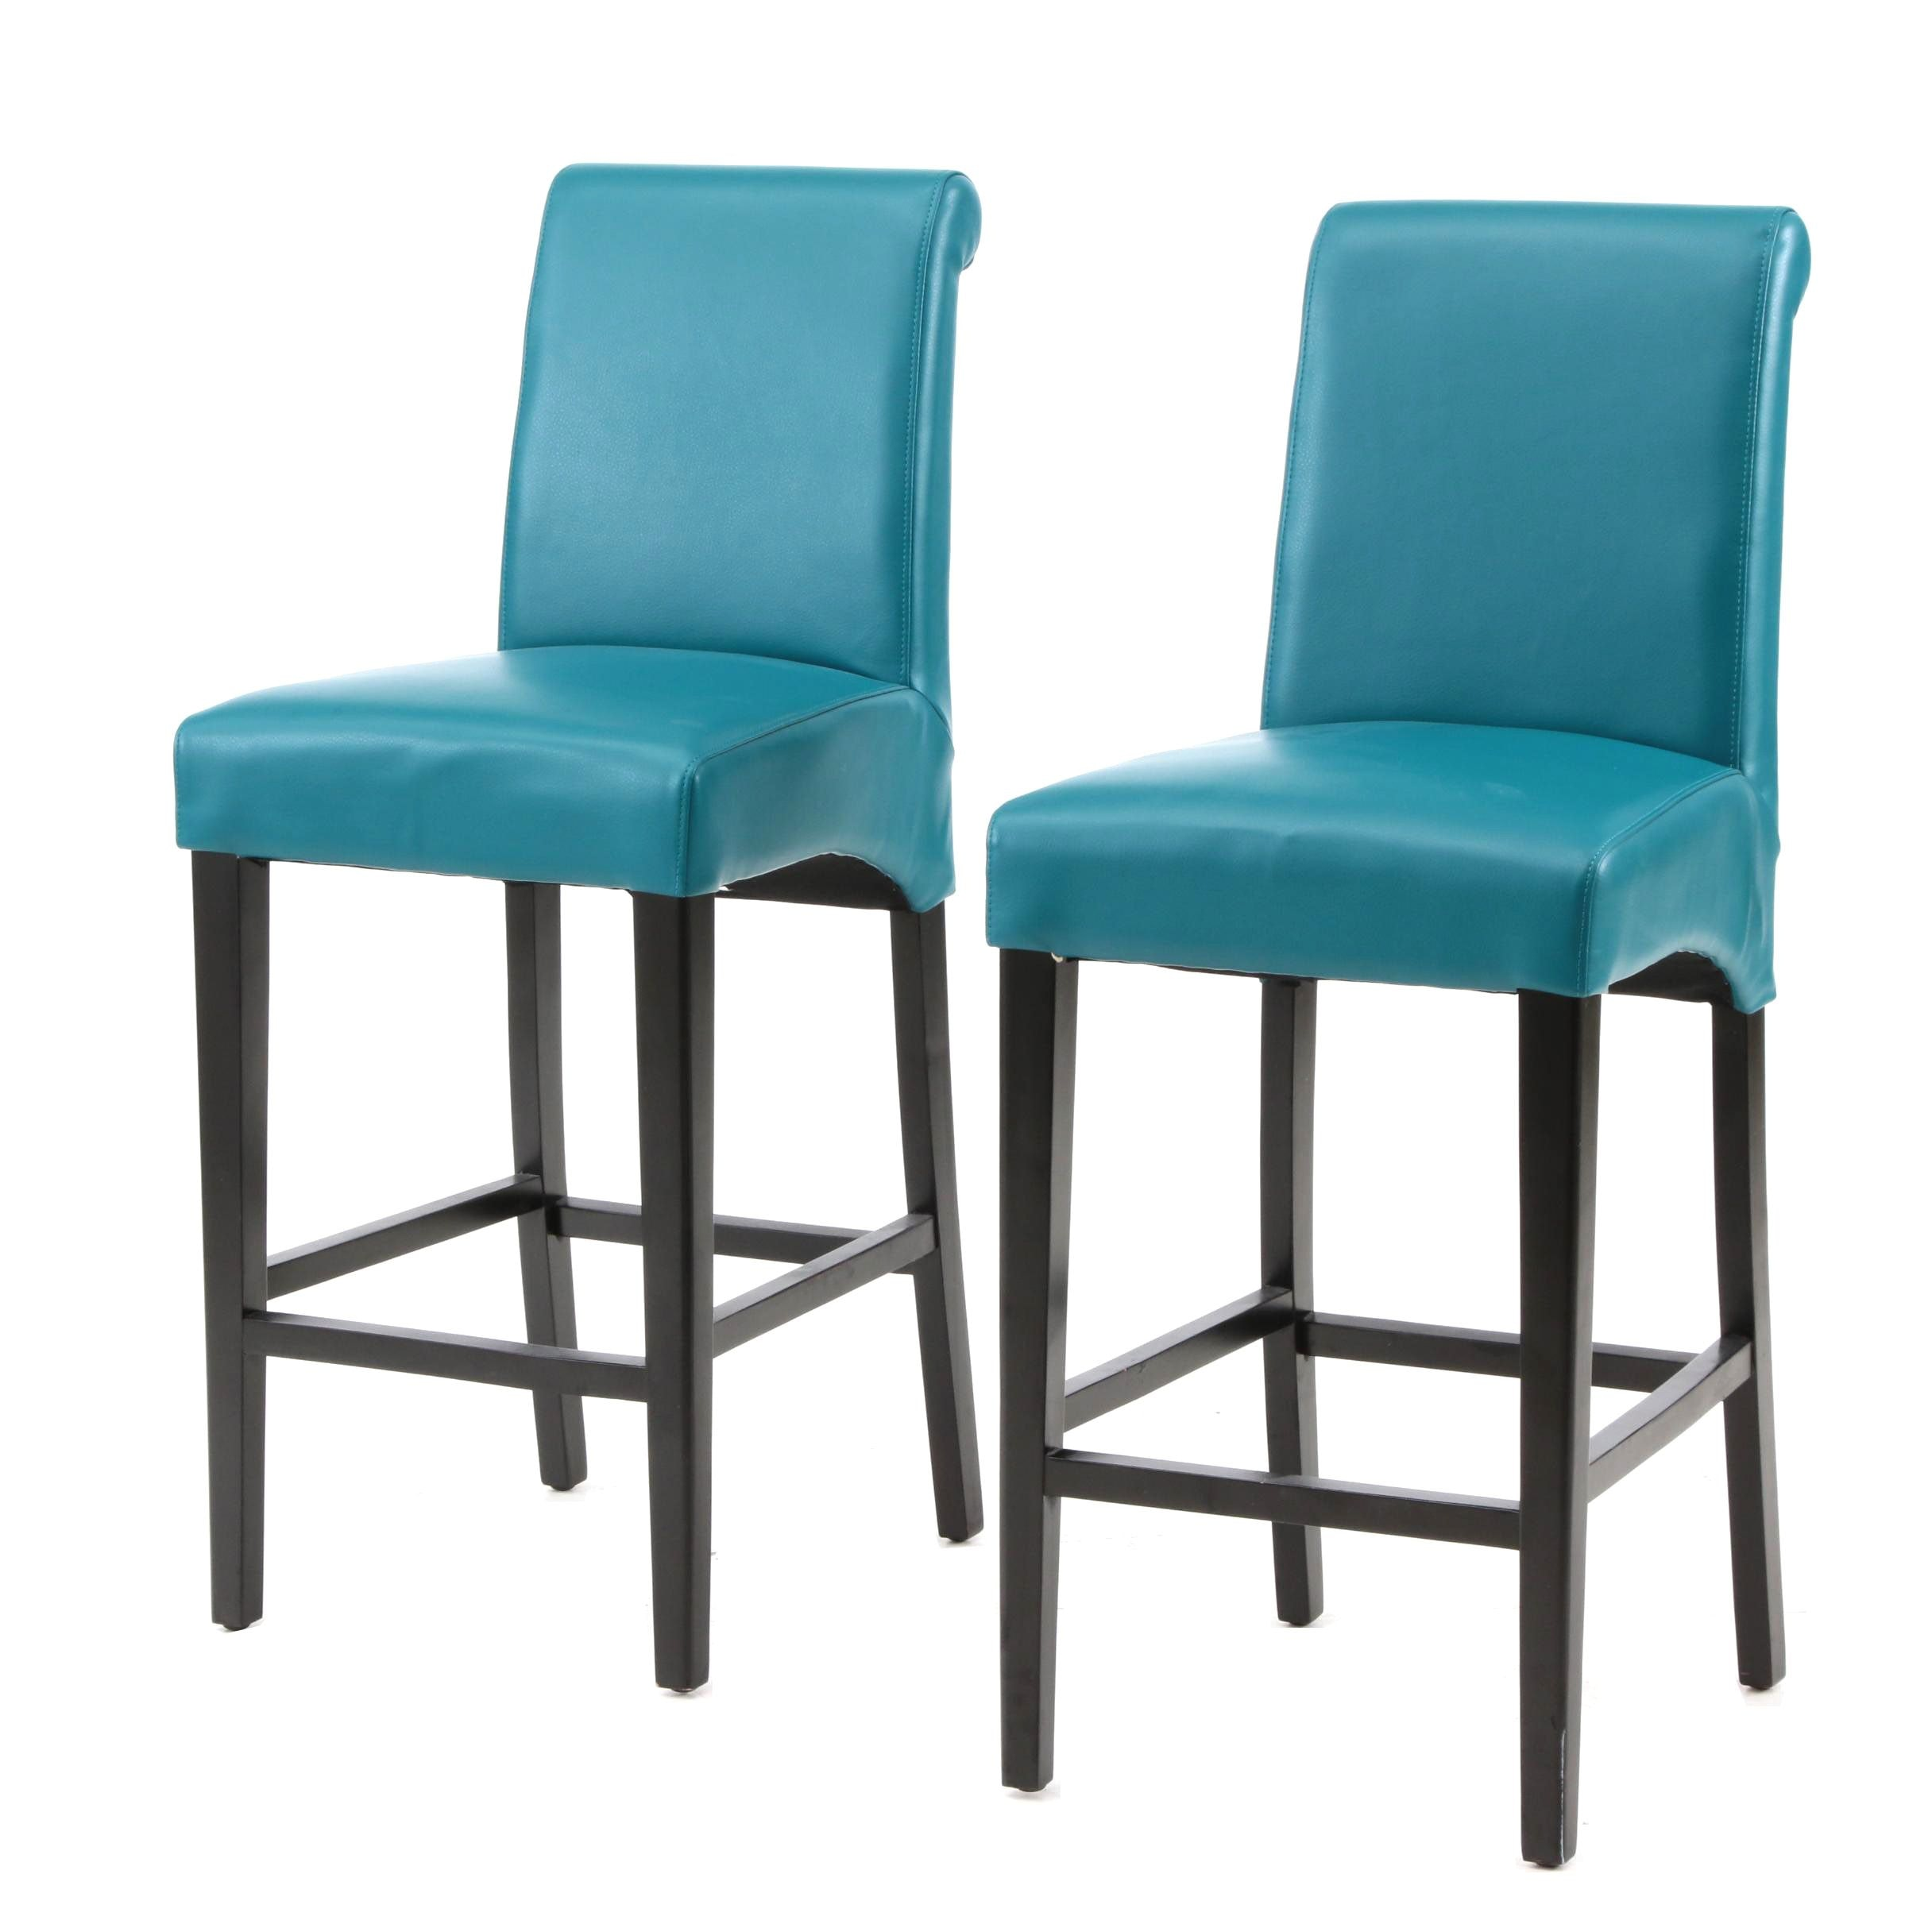 Counter Height Upholstered Bar Stools in Blue